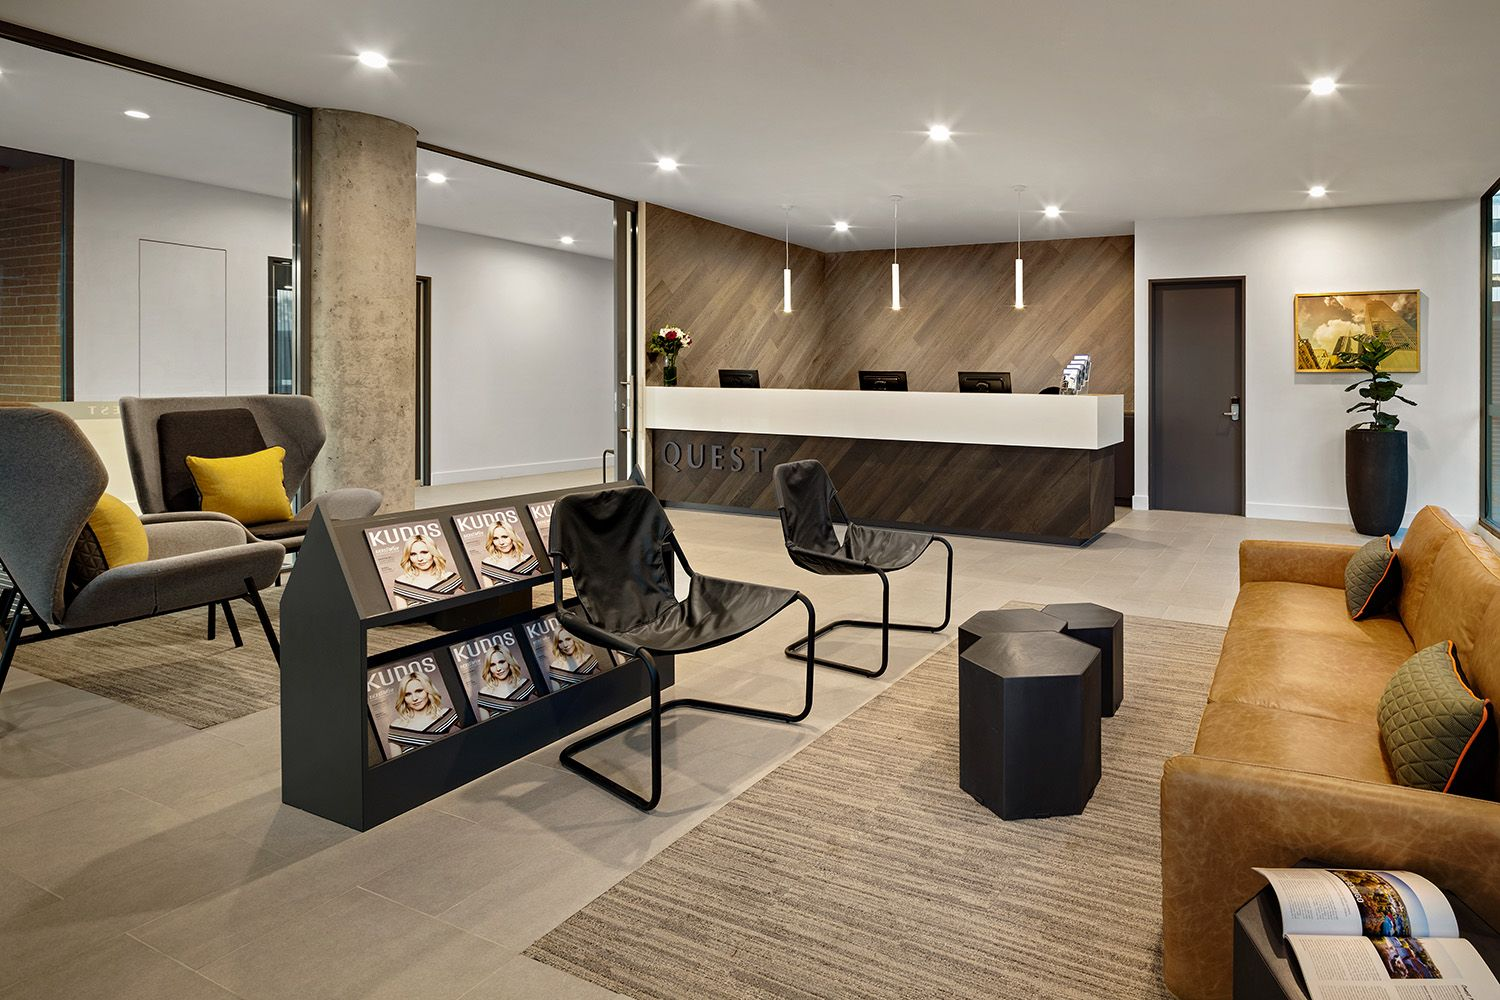 Image result for quest apartment hotels reception (With ...